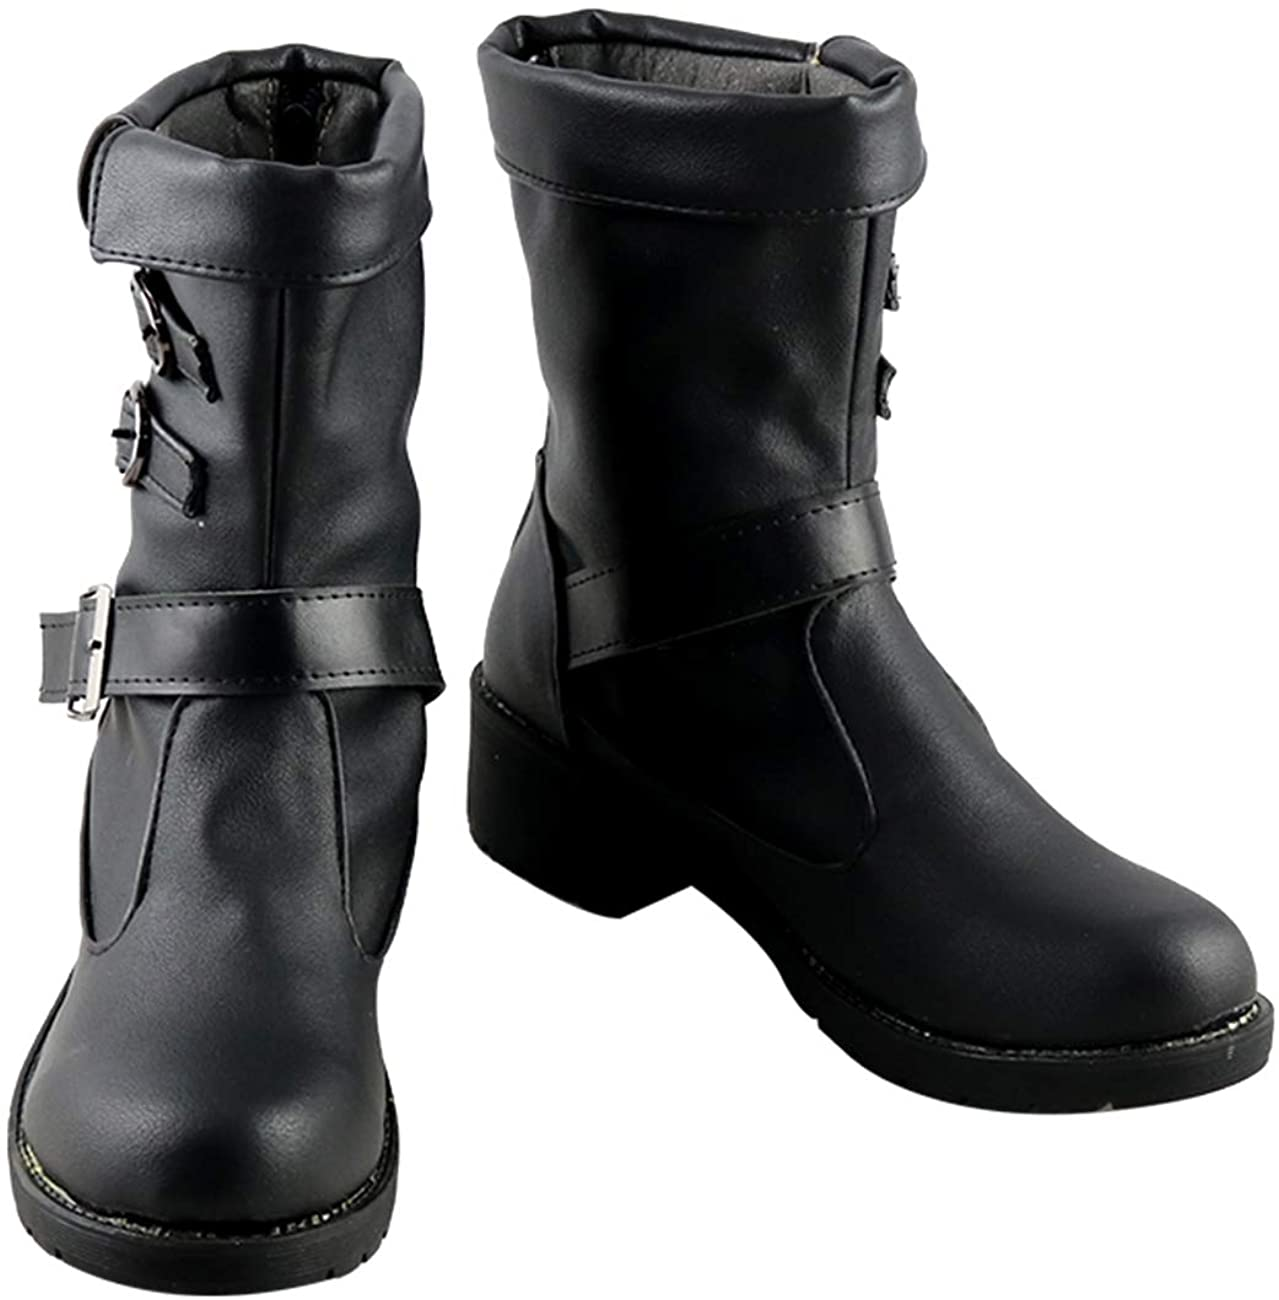 Marrol FF7 Remake Aerith Gainsborough Cosplay Shoes Aerith Boots